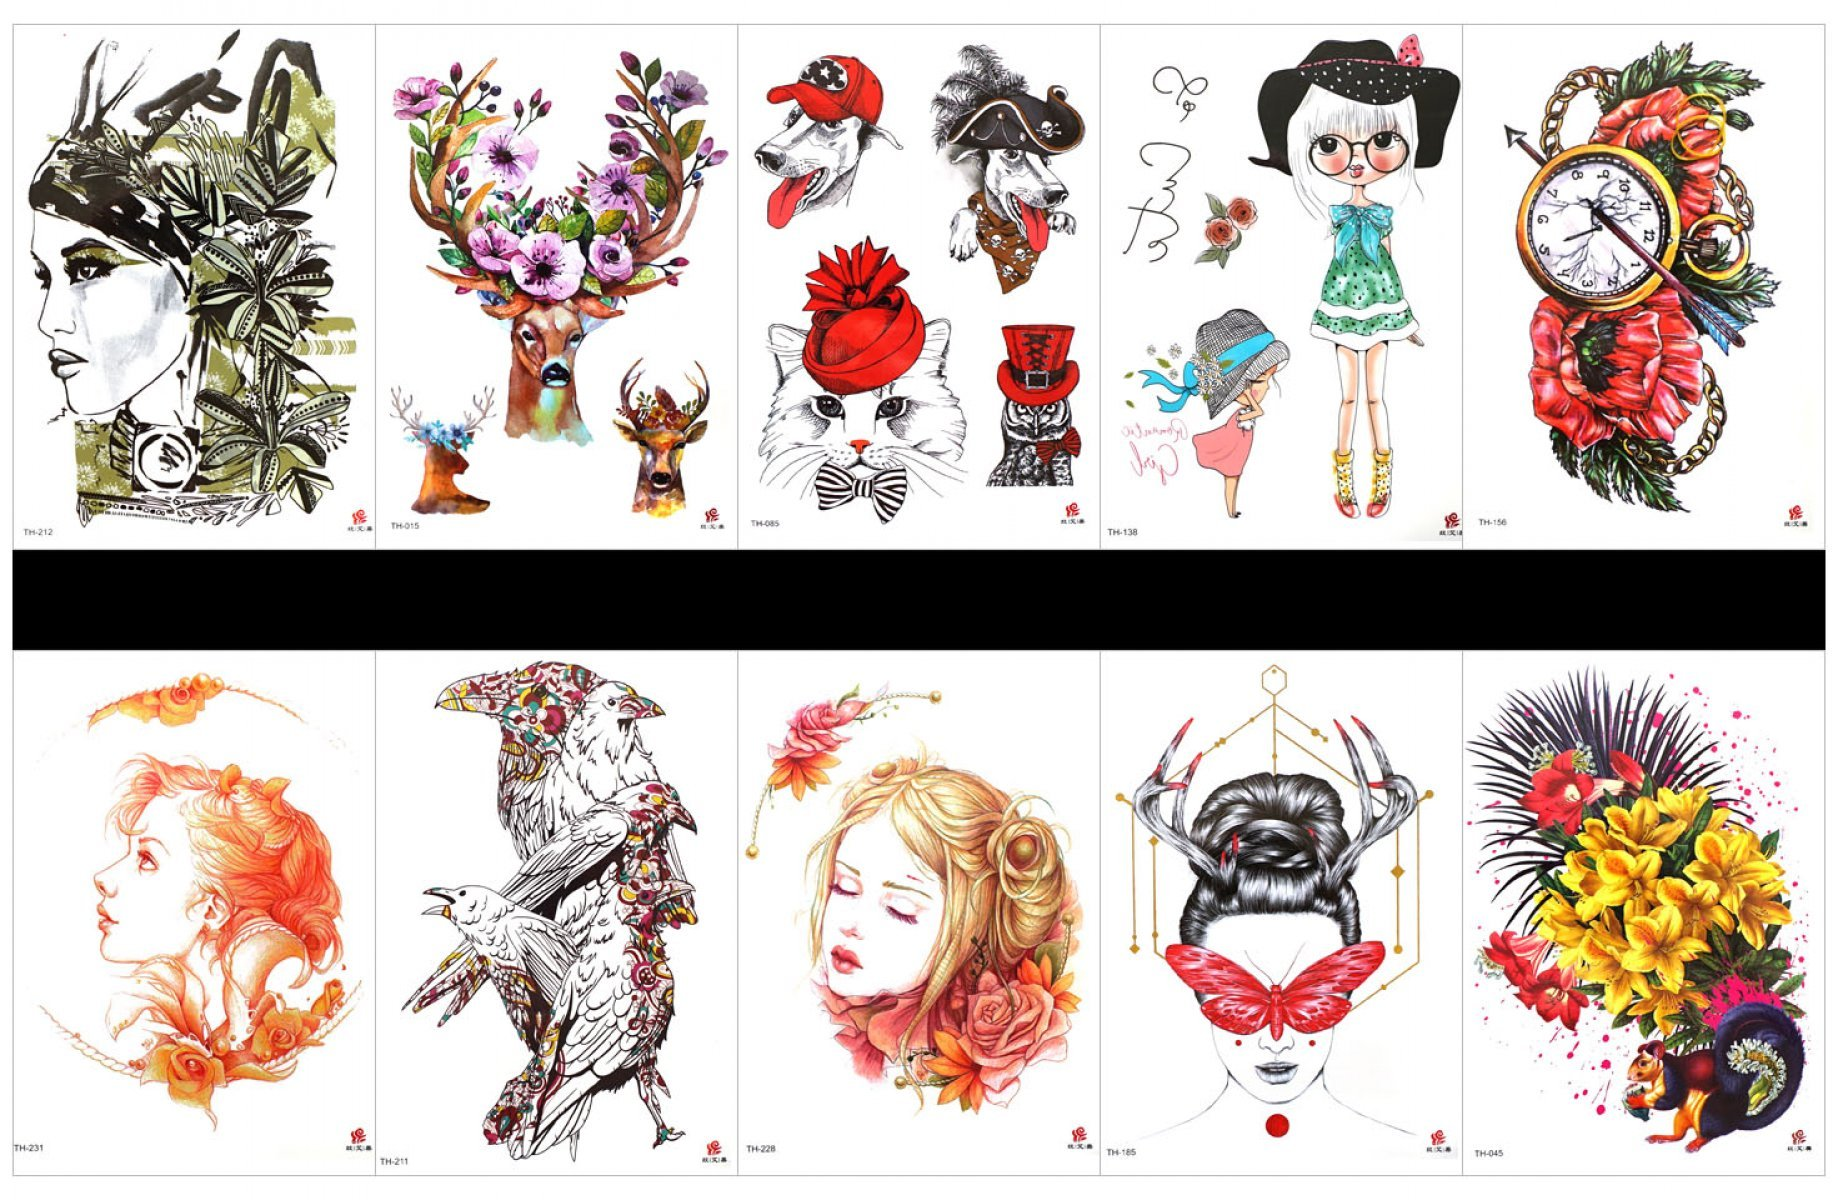 GGSELL GGSELL 10pcs tattoo rose temporary tattoos in one packages,including lady,deer with flowers,cute dog and cat,beautiful girls,clock with flowers,owl,squirrel with flowers,etc.